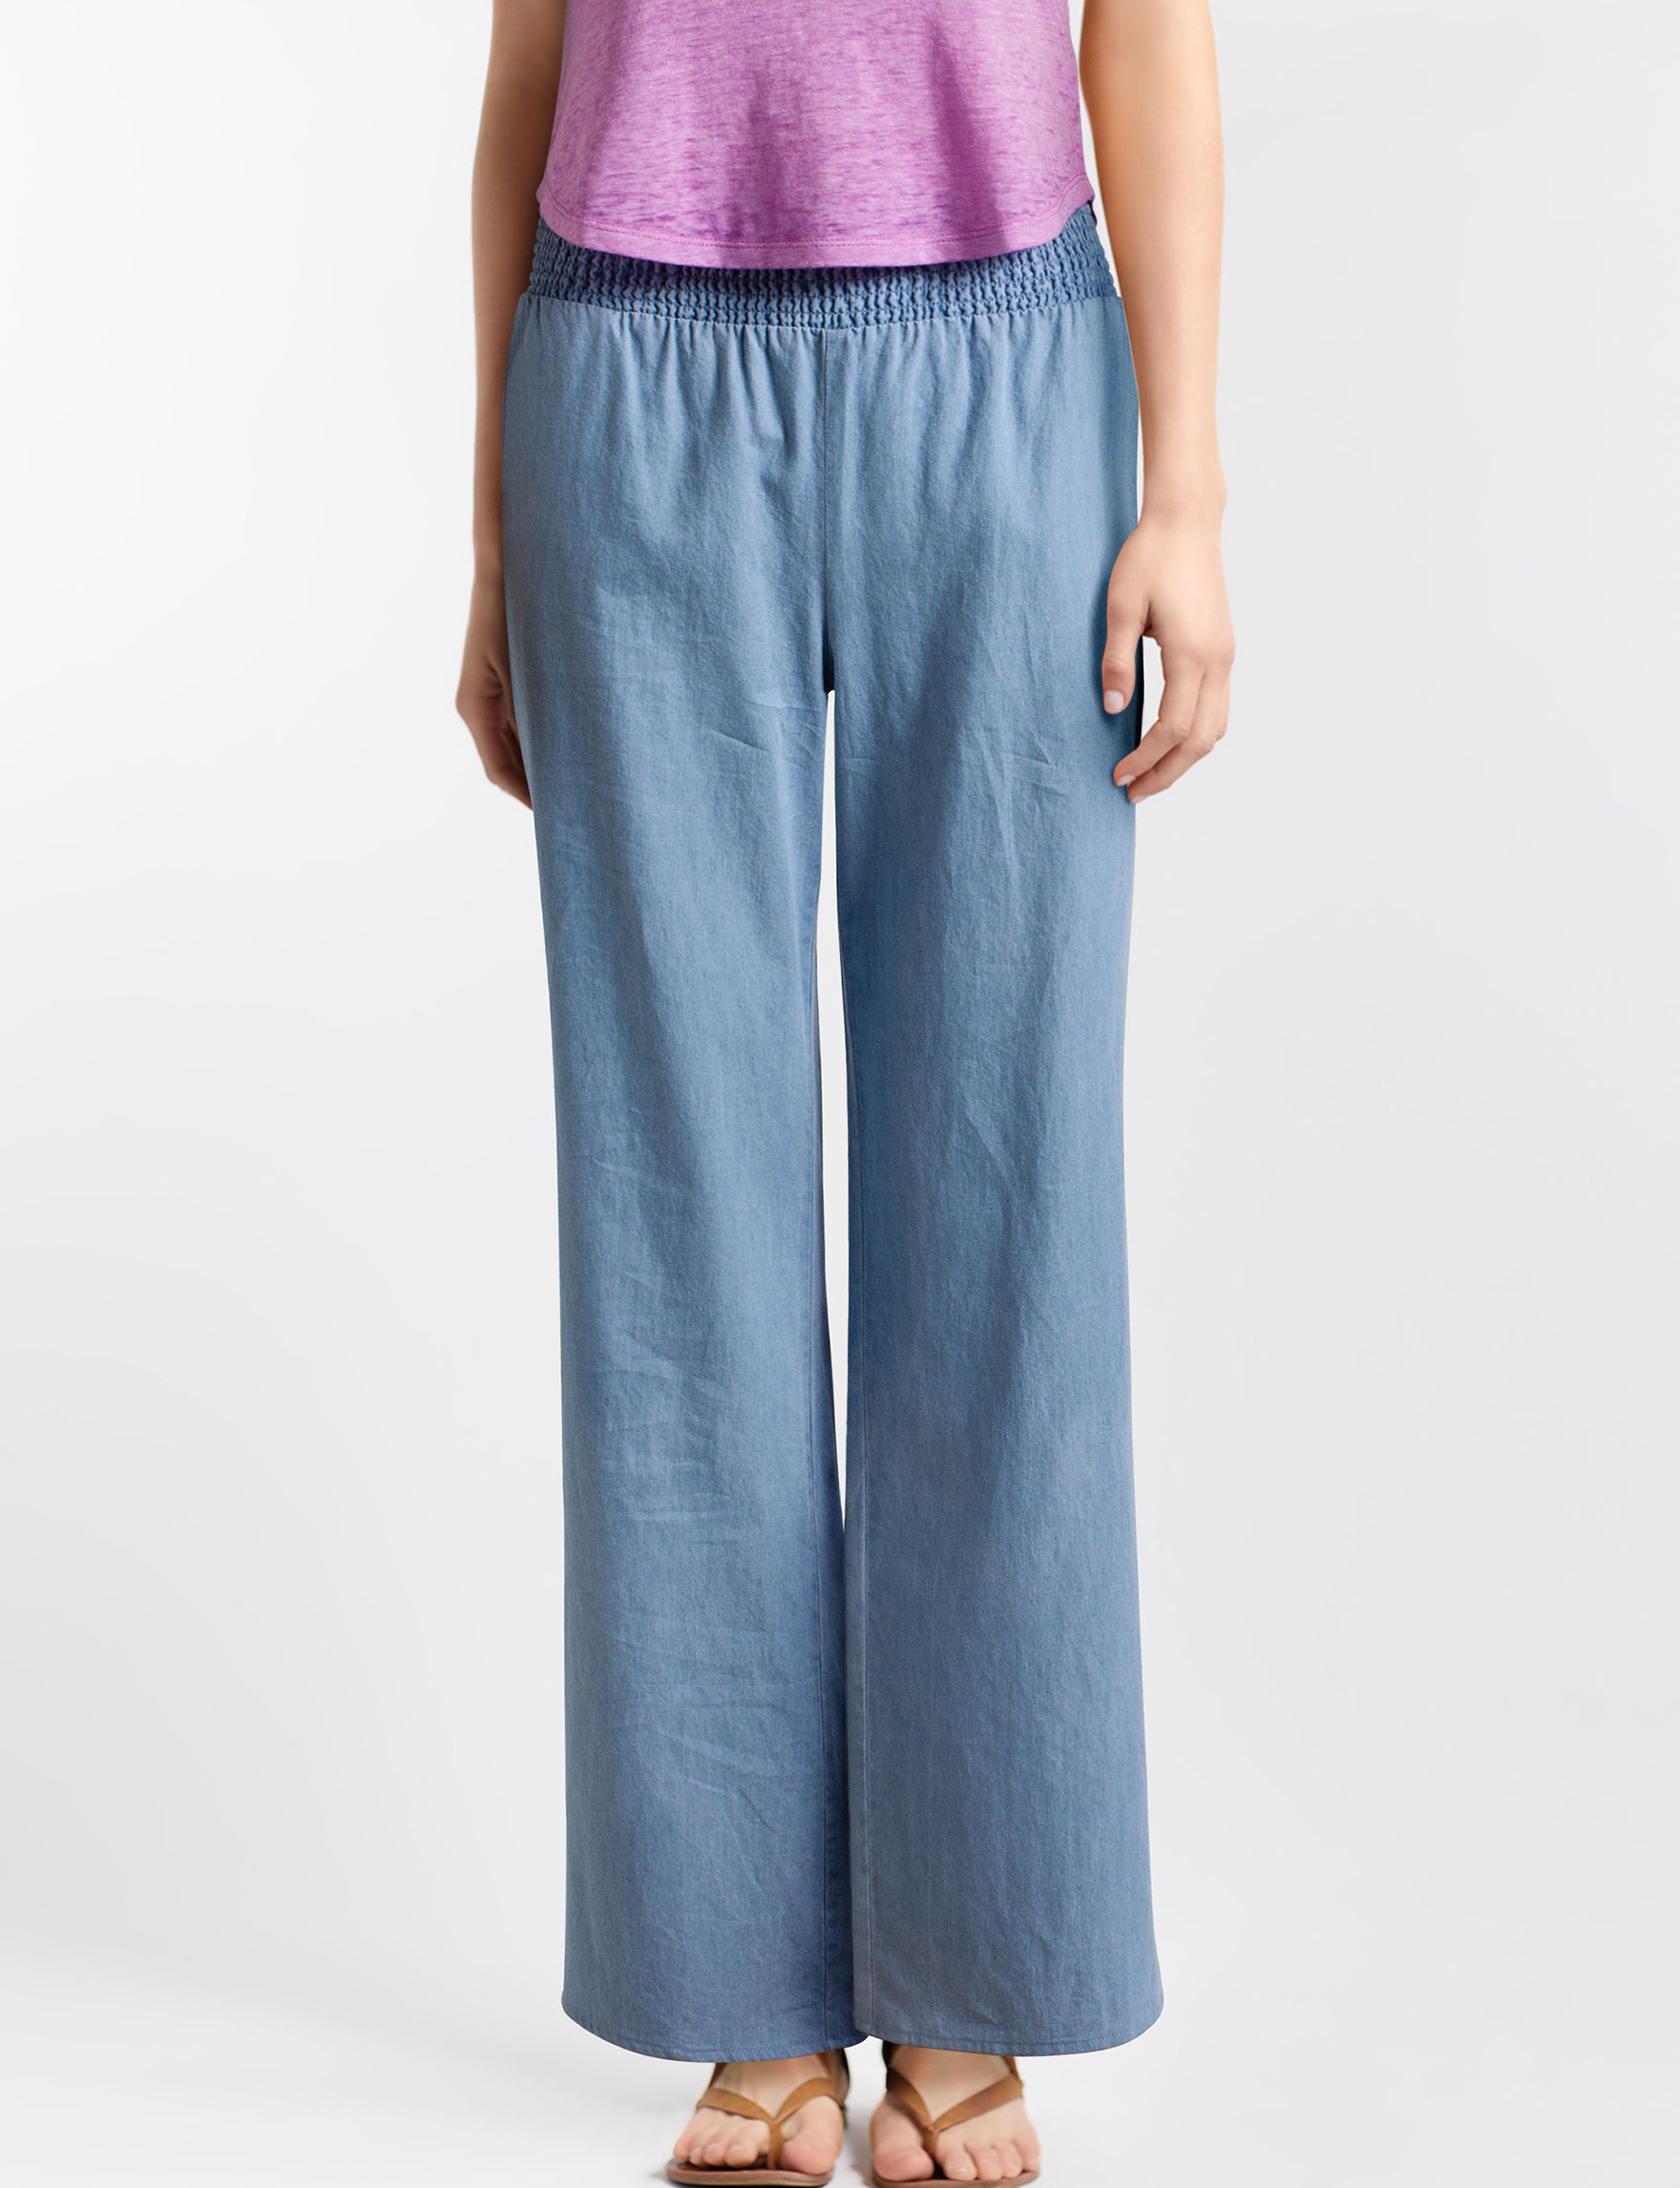 Justify Chambray Wide Leg